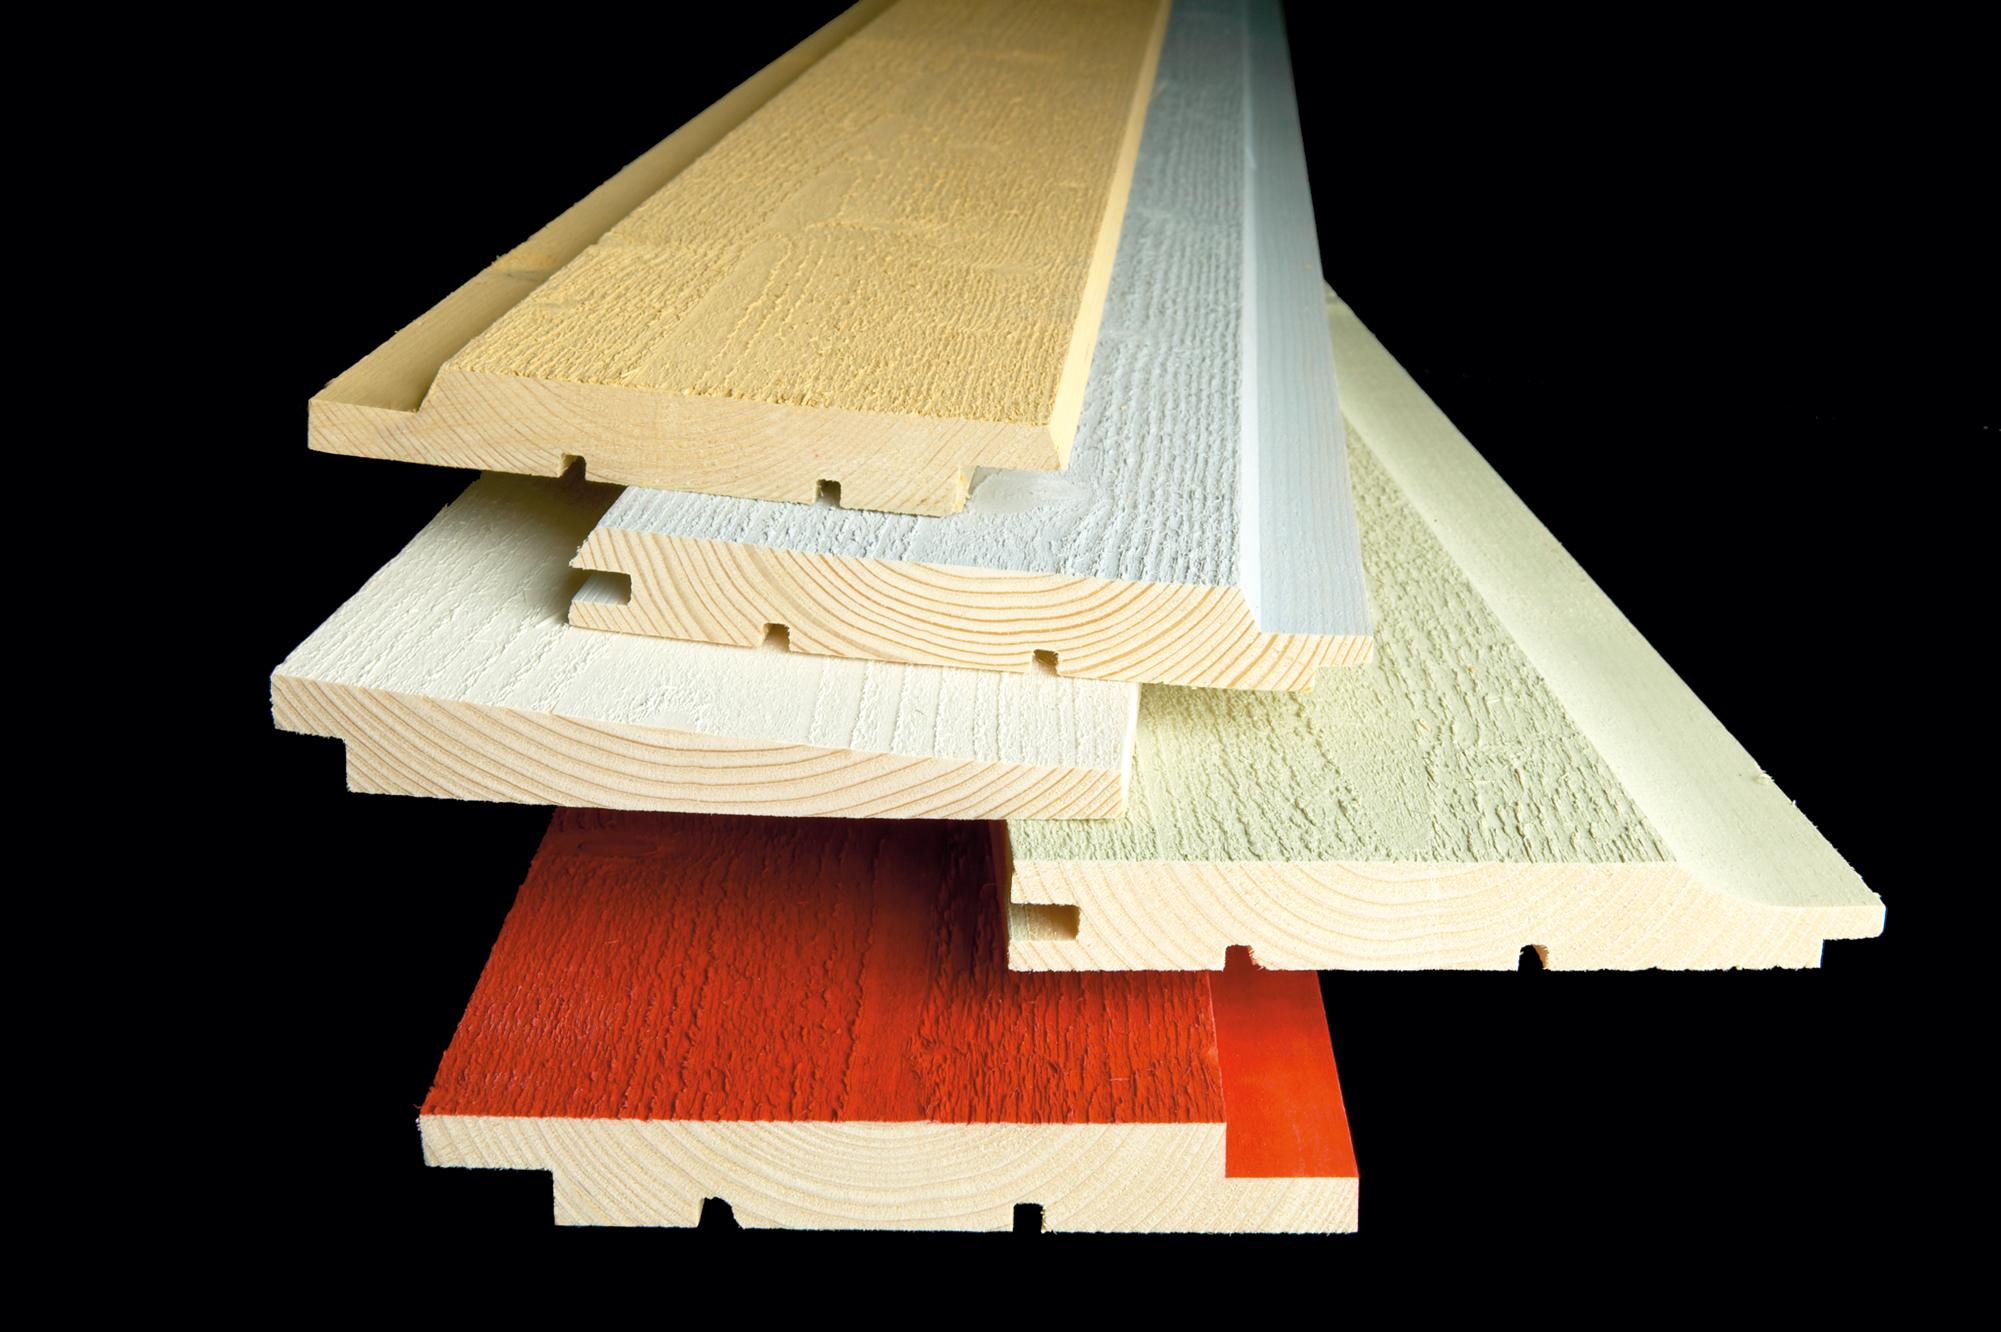 Exterior cladding panels with ecological and water-soluble paints